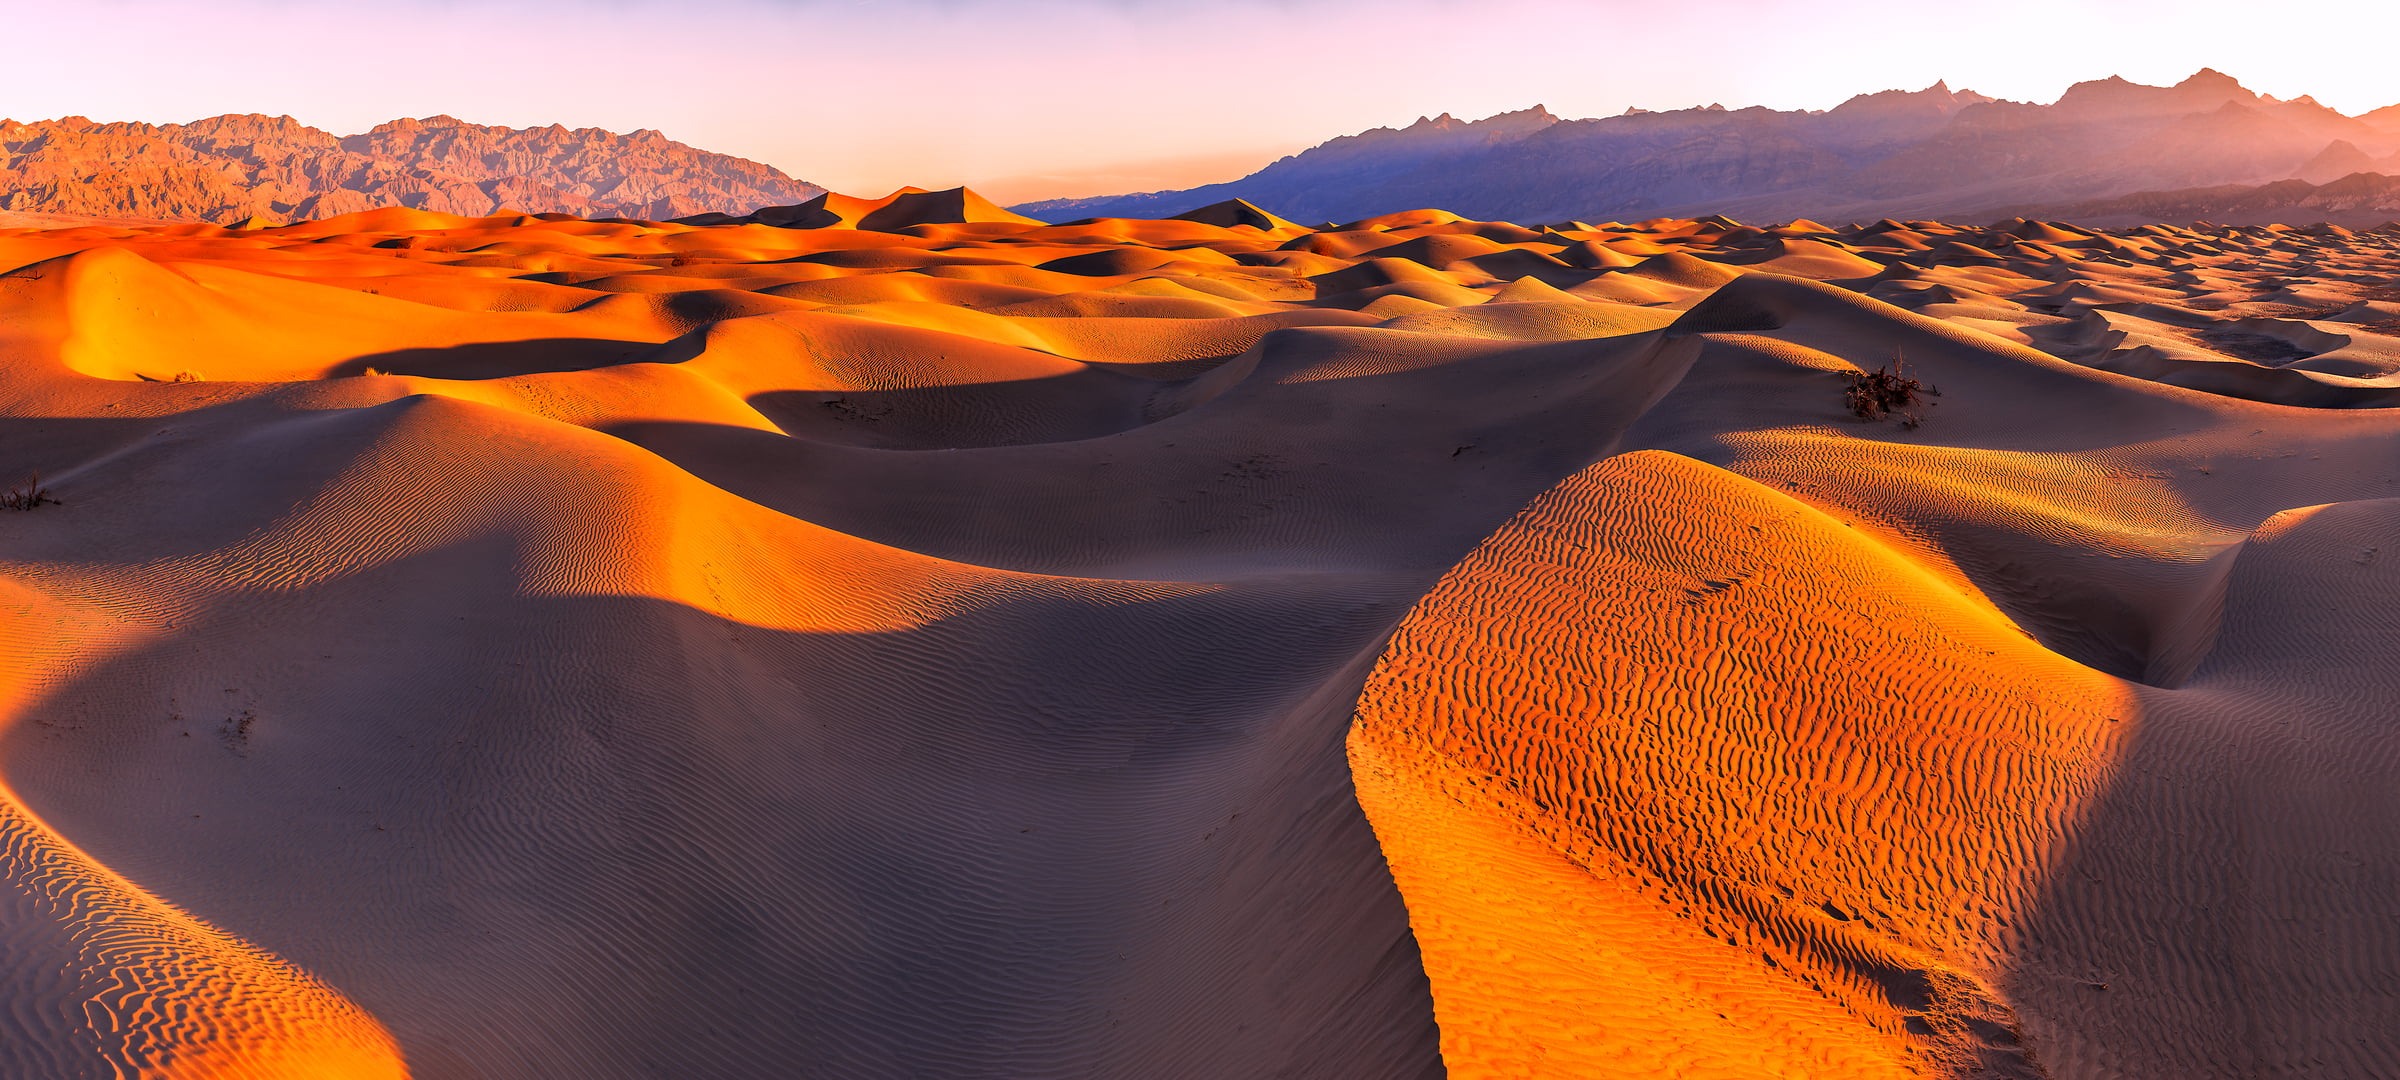 1,831 megapixels! A very high resolution, large-format VAST photo print of sand dunes in Death Valley National Park; fine art landscape photo created by Chris Collacott in Death Valley National Park, California